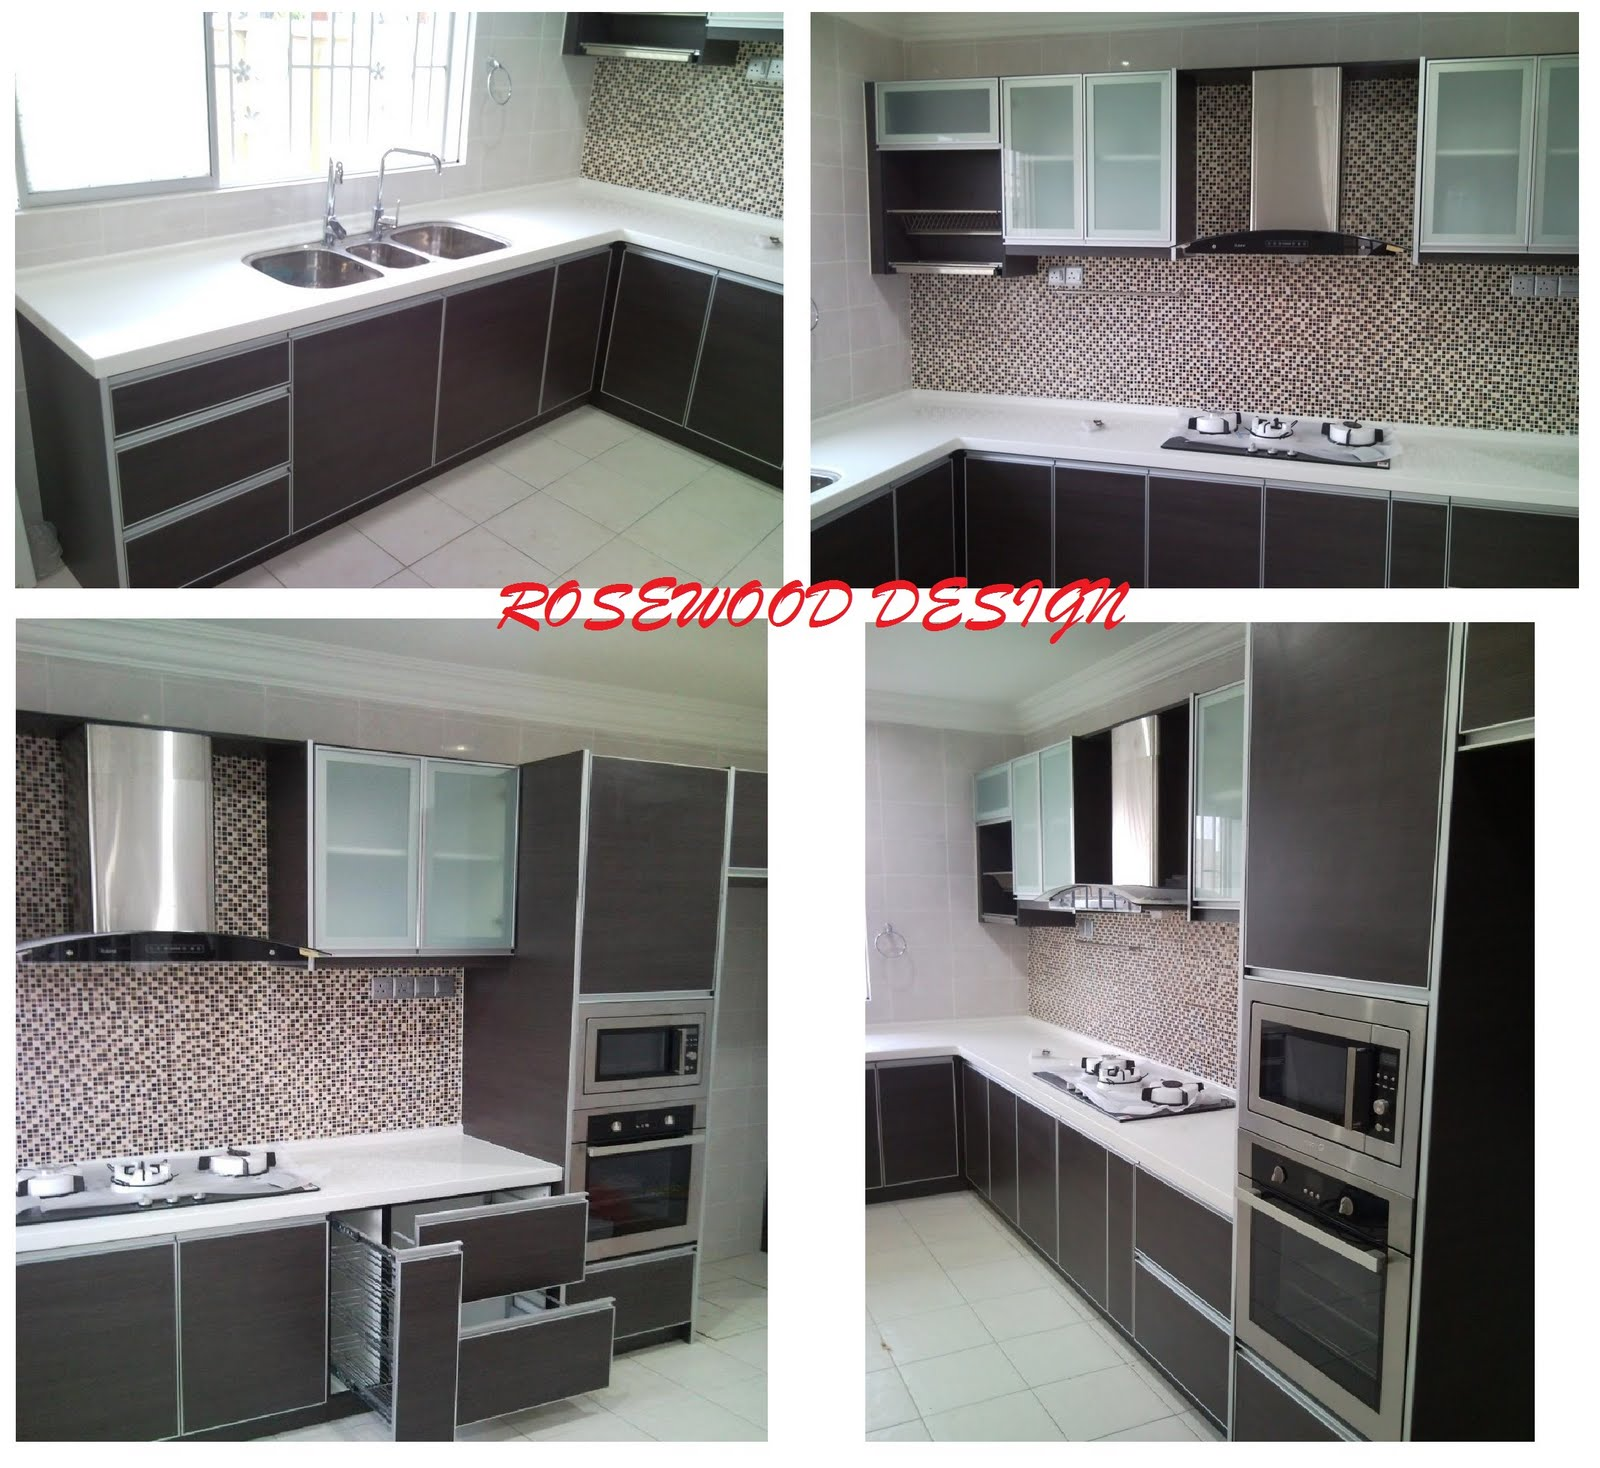 Fizly Kabinet Dapur March 2017 E To Rosewood Design Welcom